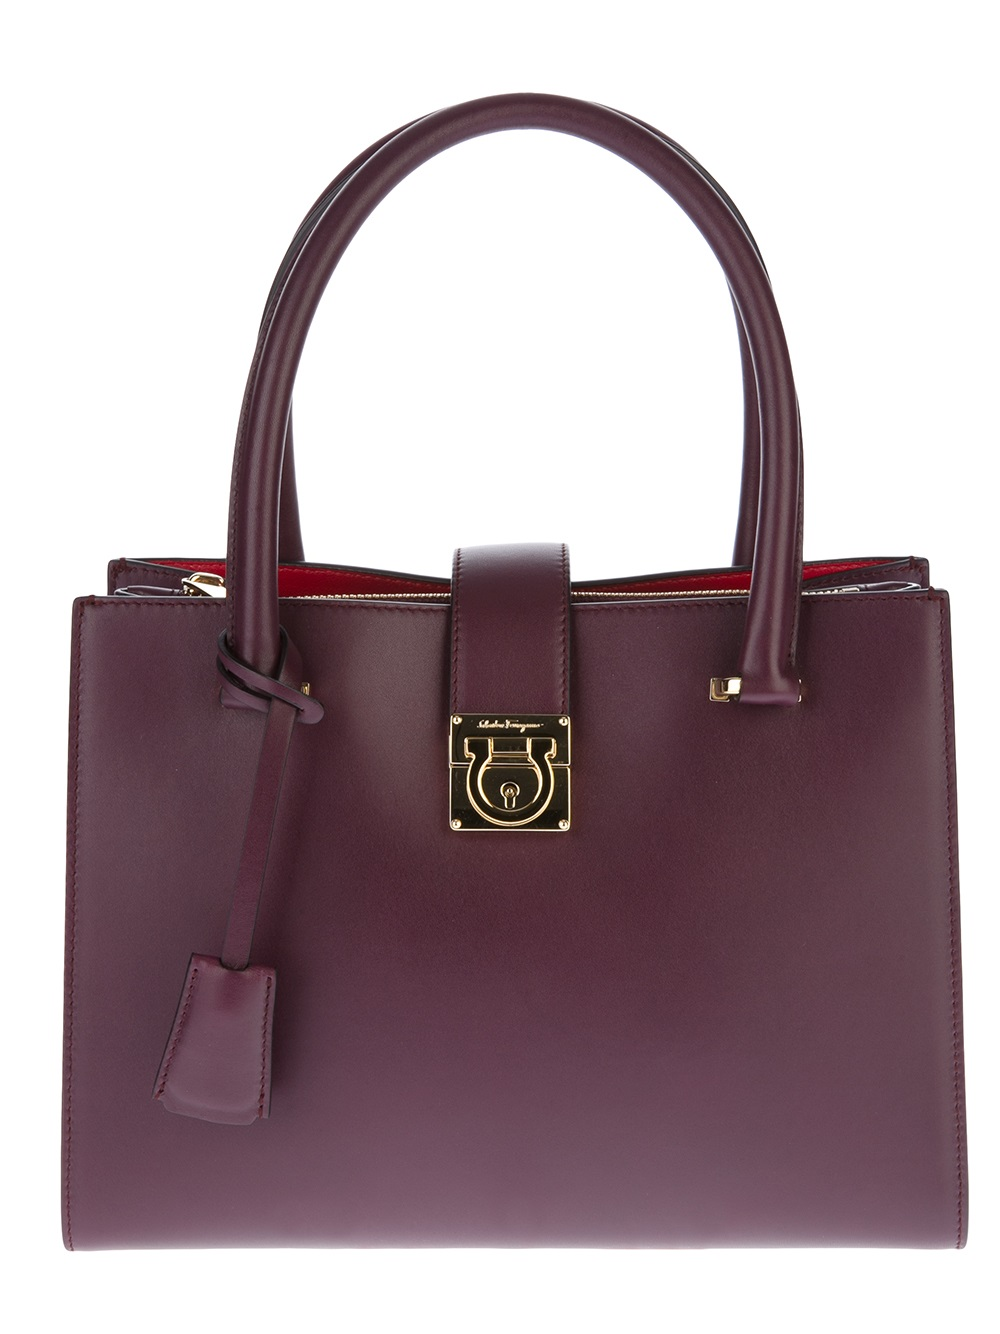 0dd1c638cdab ... Lyst - Ferragamo Juliette Tote in Purple official photos 6ac24 c3a58 ...